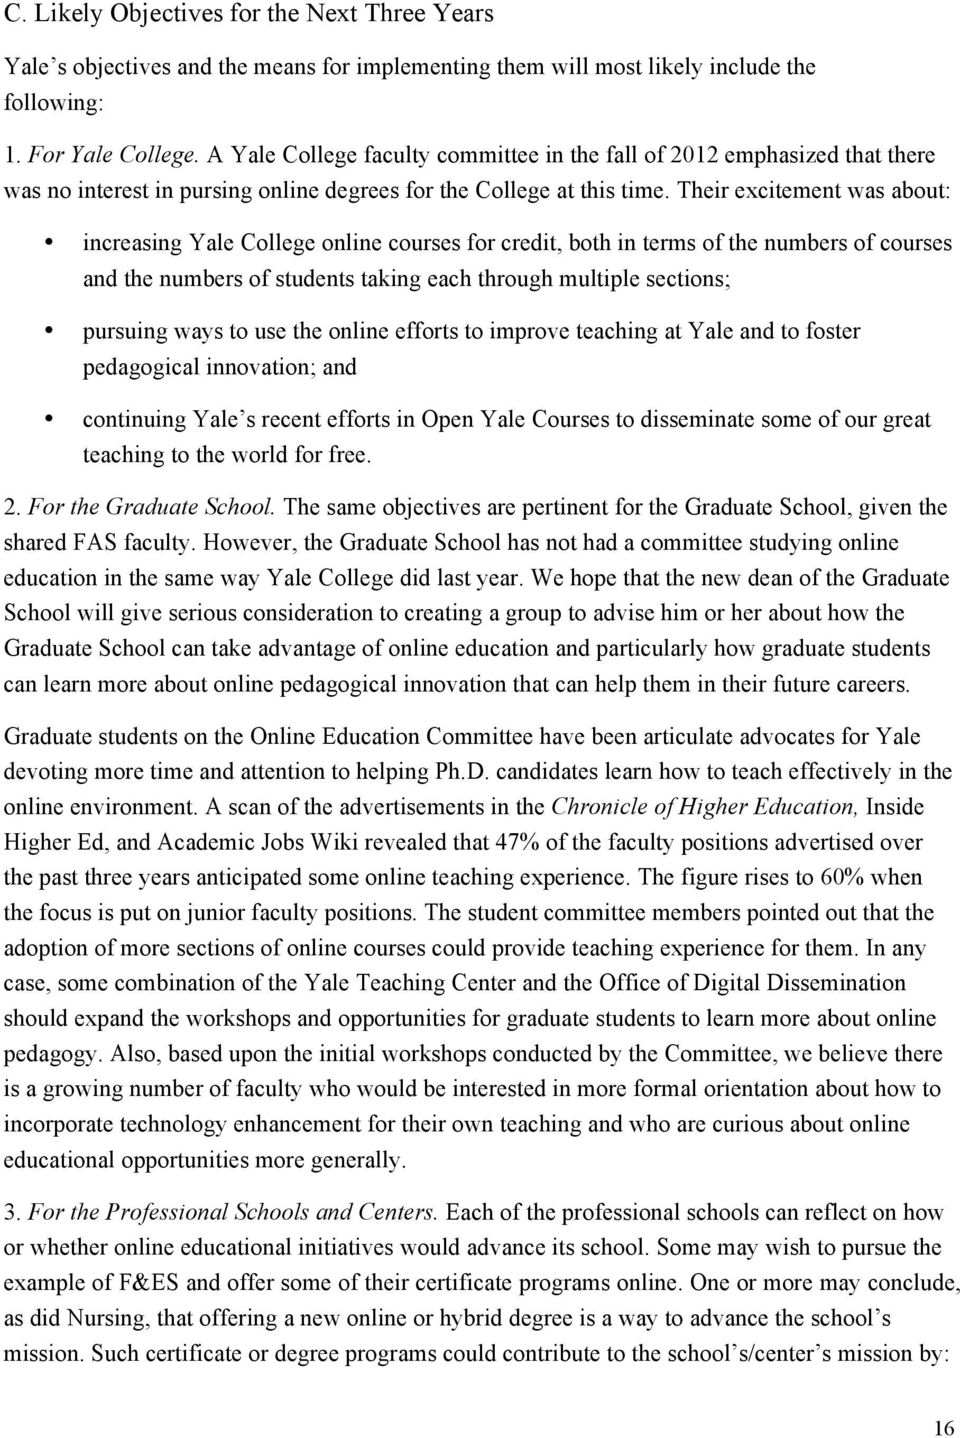 Their excitement was about: increasing Yale College online courses for credit, both in terms of the numbers of courses and the numbers of students taking each through multiple sections; pursuing ways